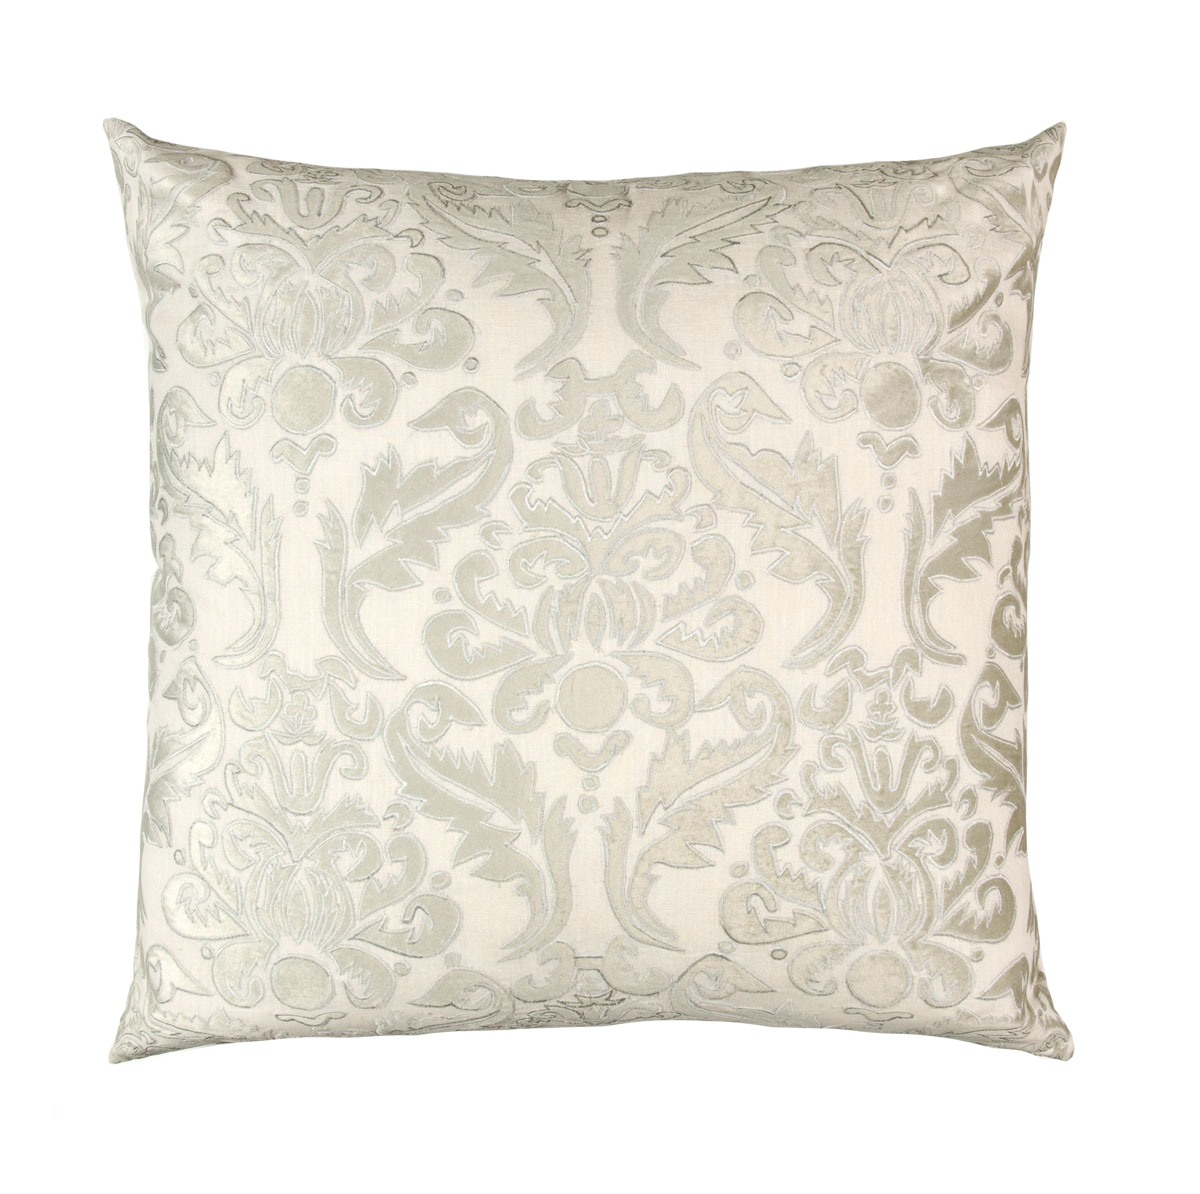 Lili Alessandra Versailles European Pillow in White/Silver Linen